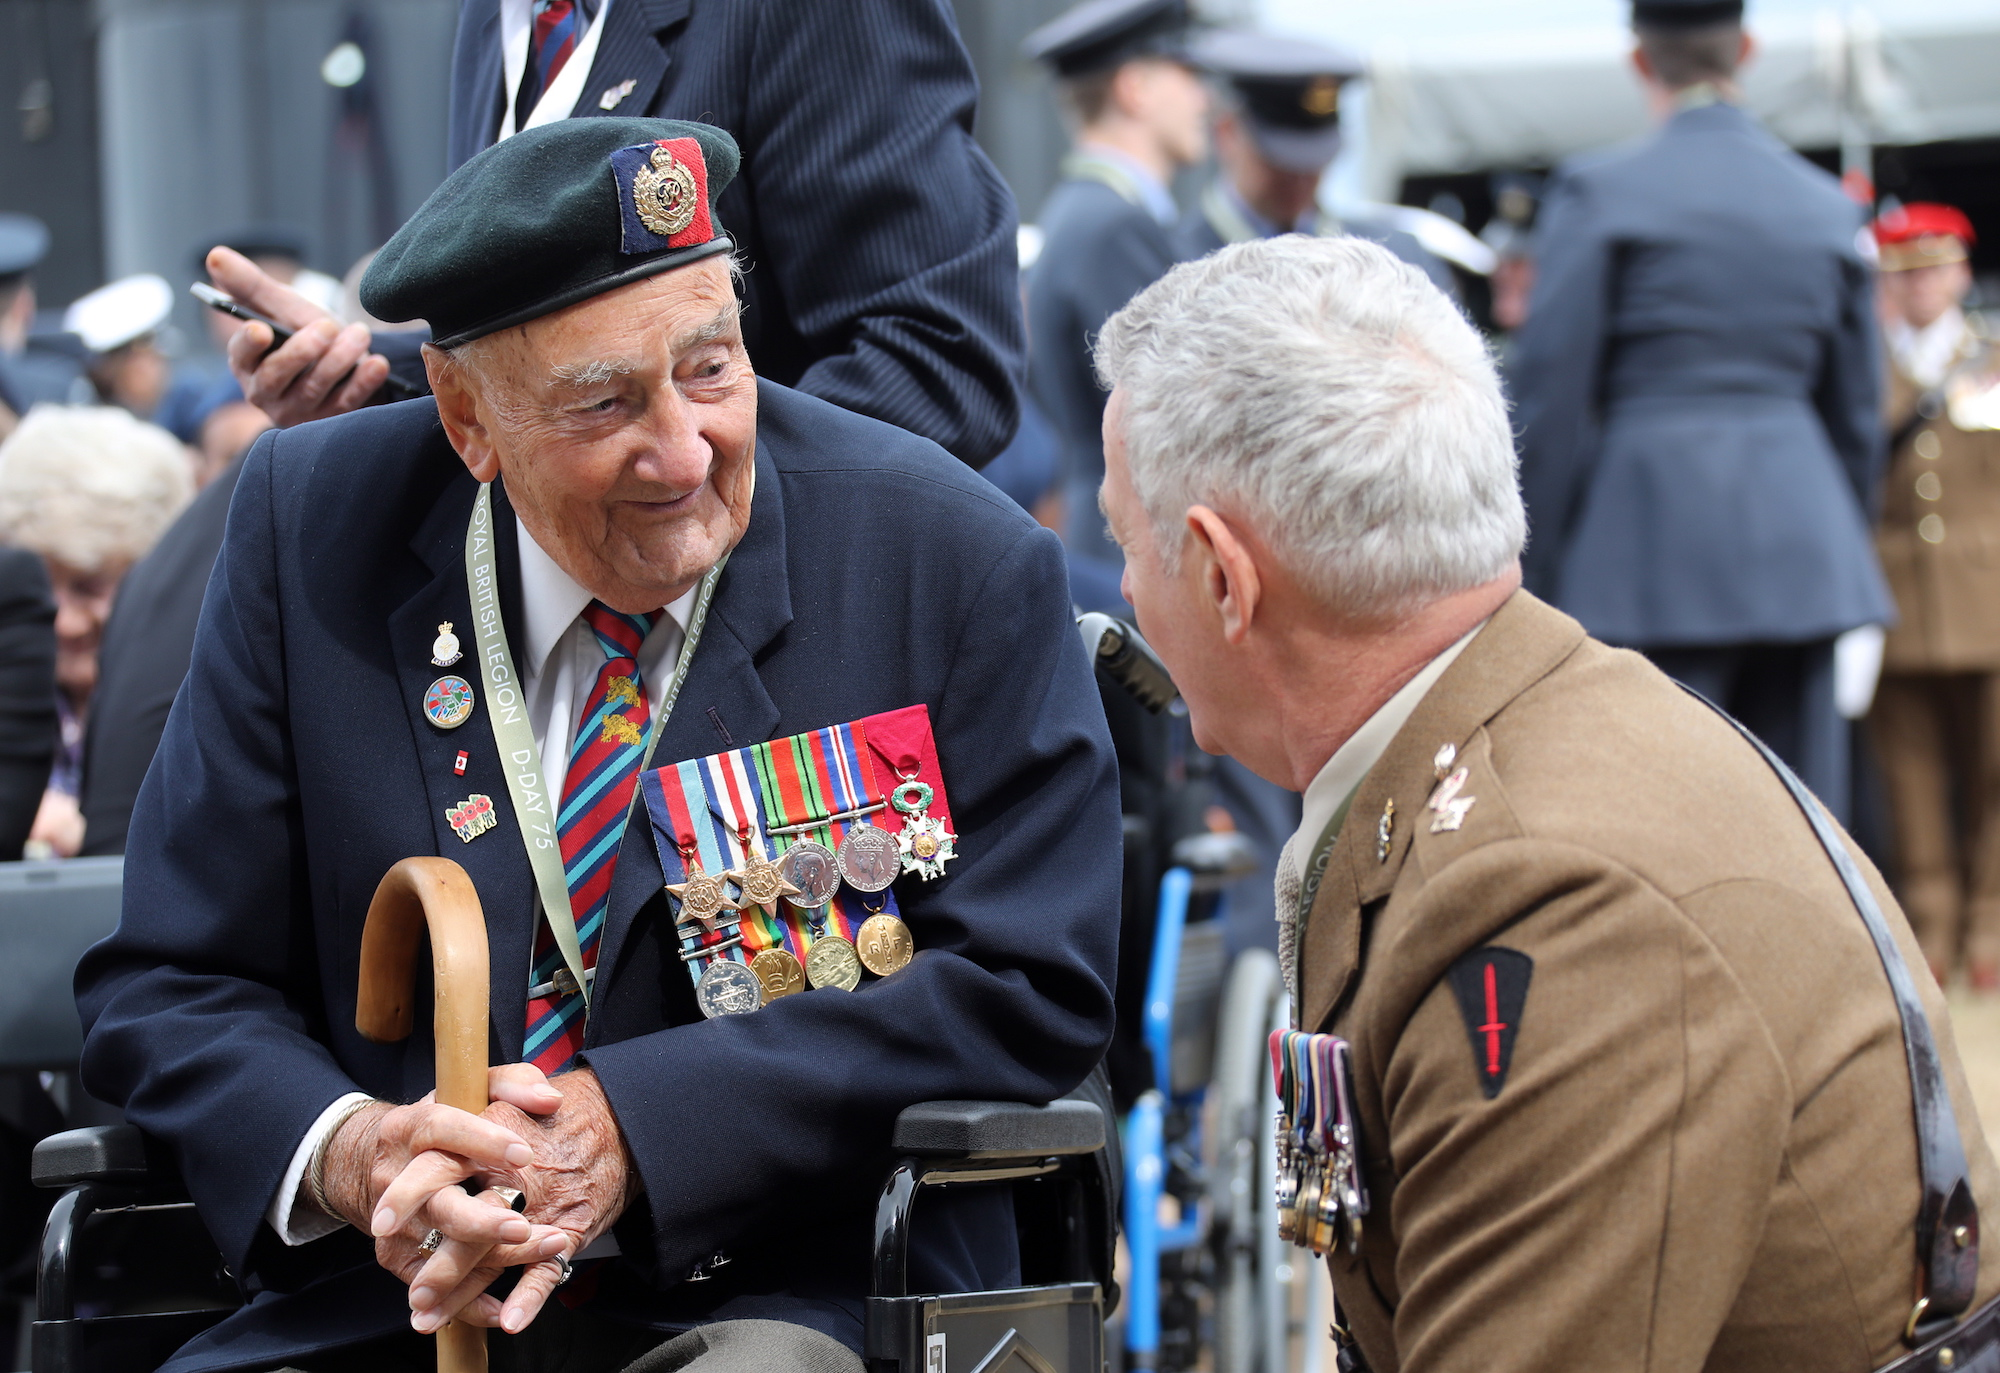 Portsmouth D-Day Commemorations in Pictures6.jpg